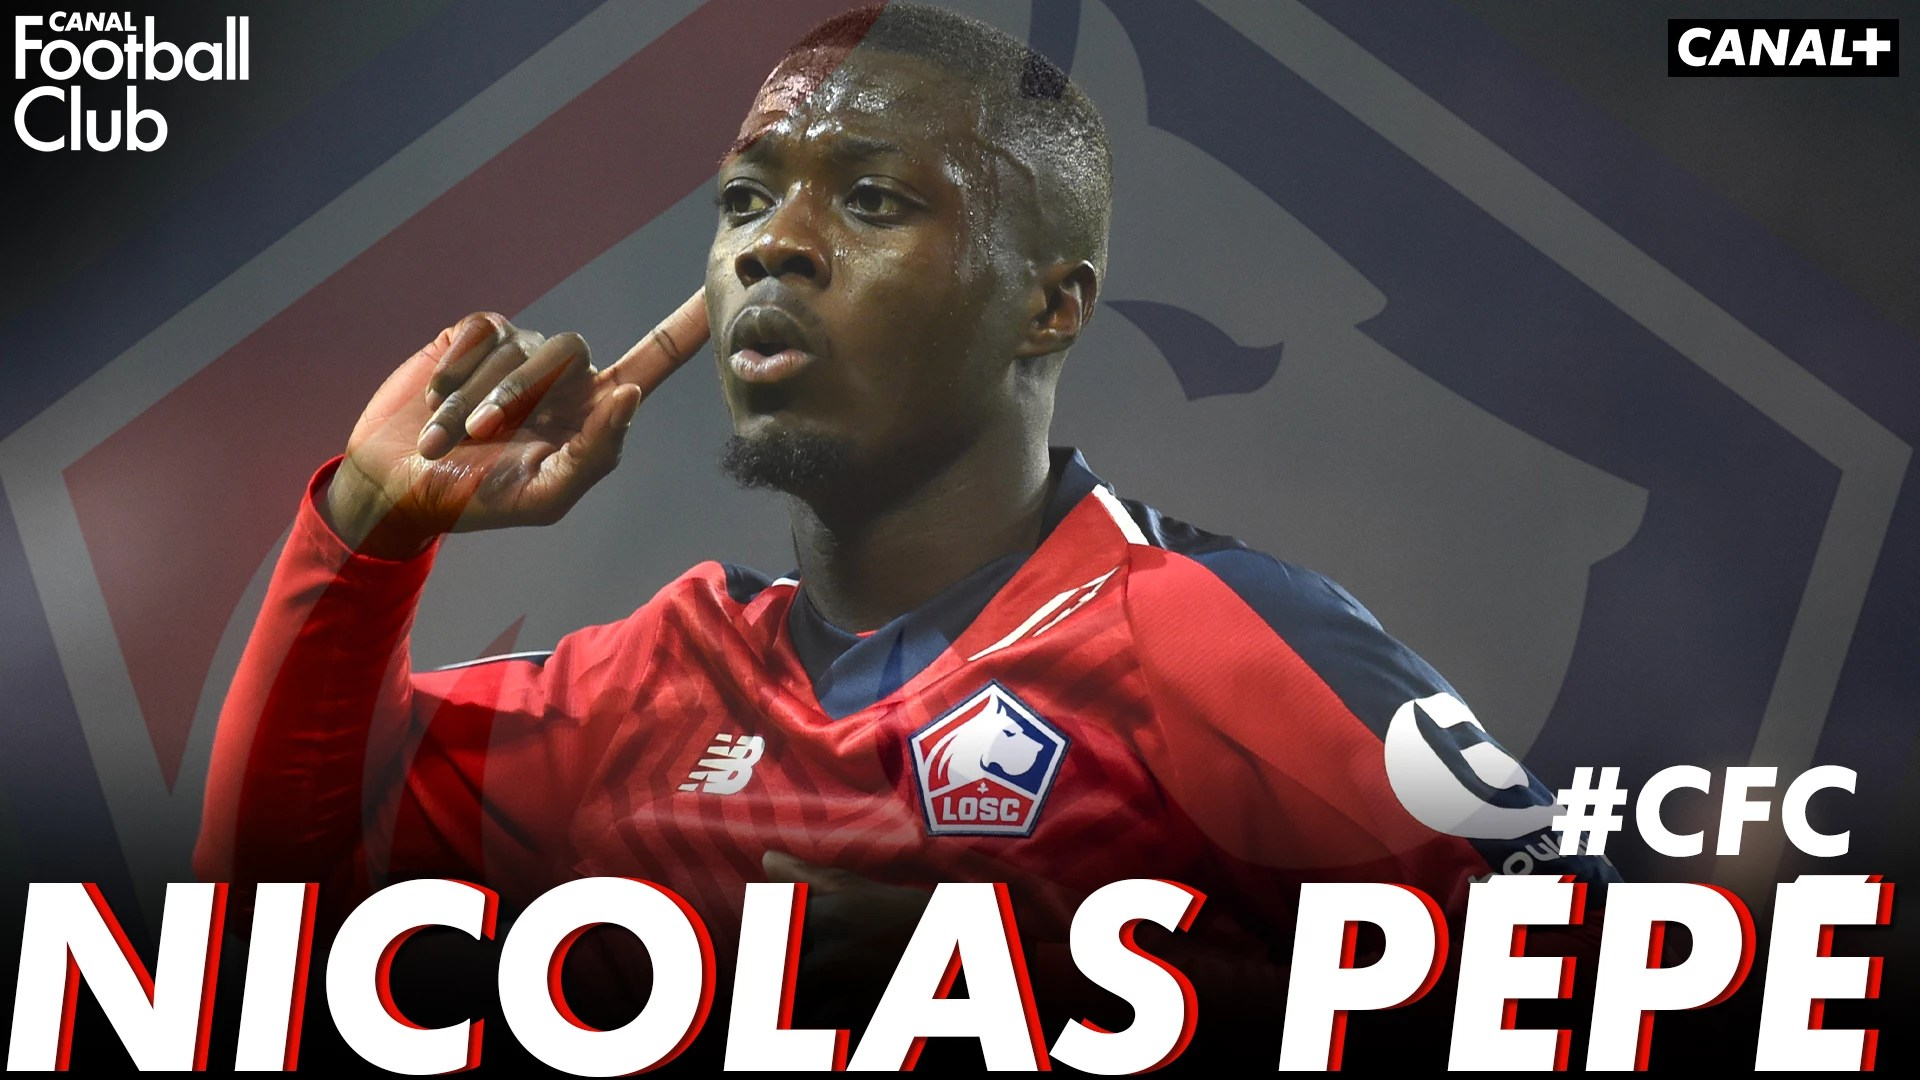 Nicolas Pepe Losc Invite Du Canal Football Club Avant